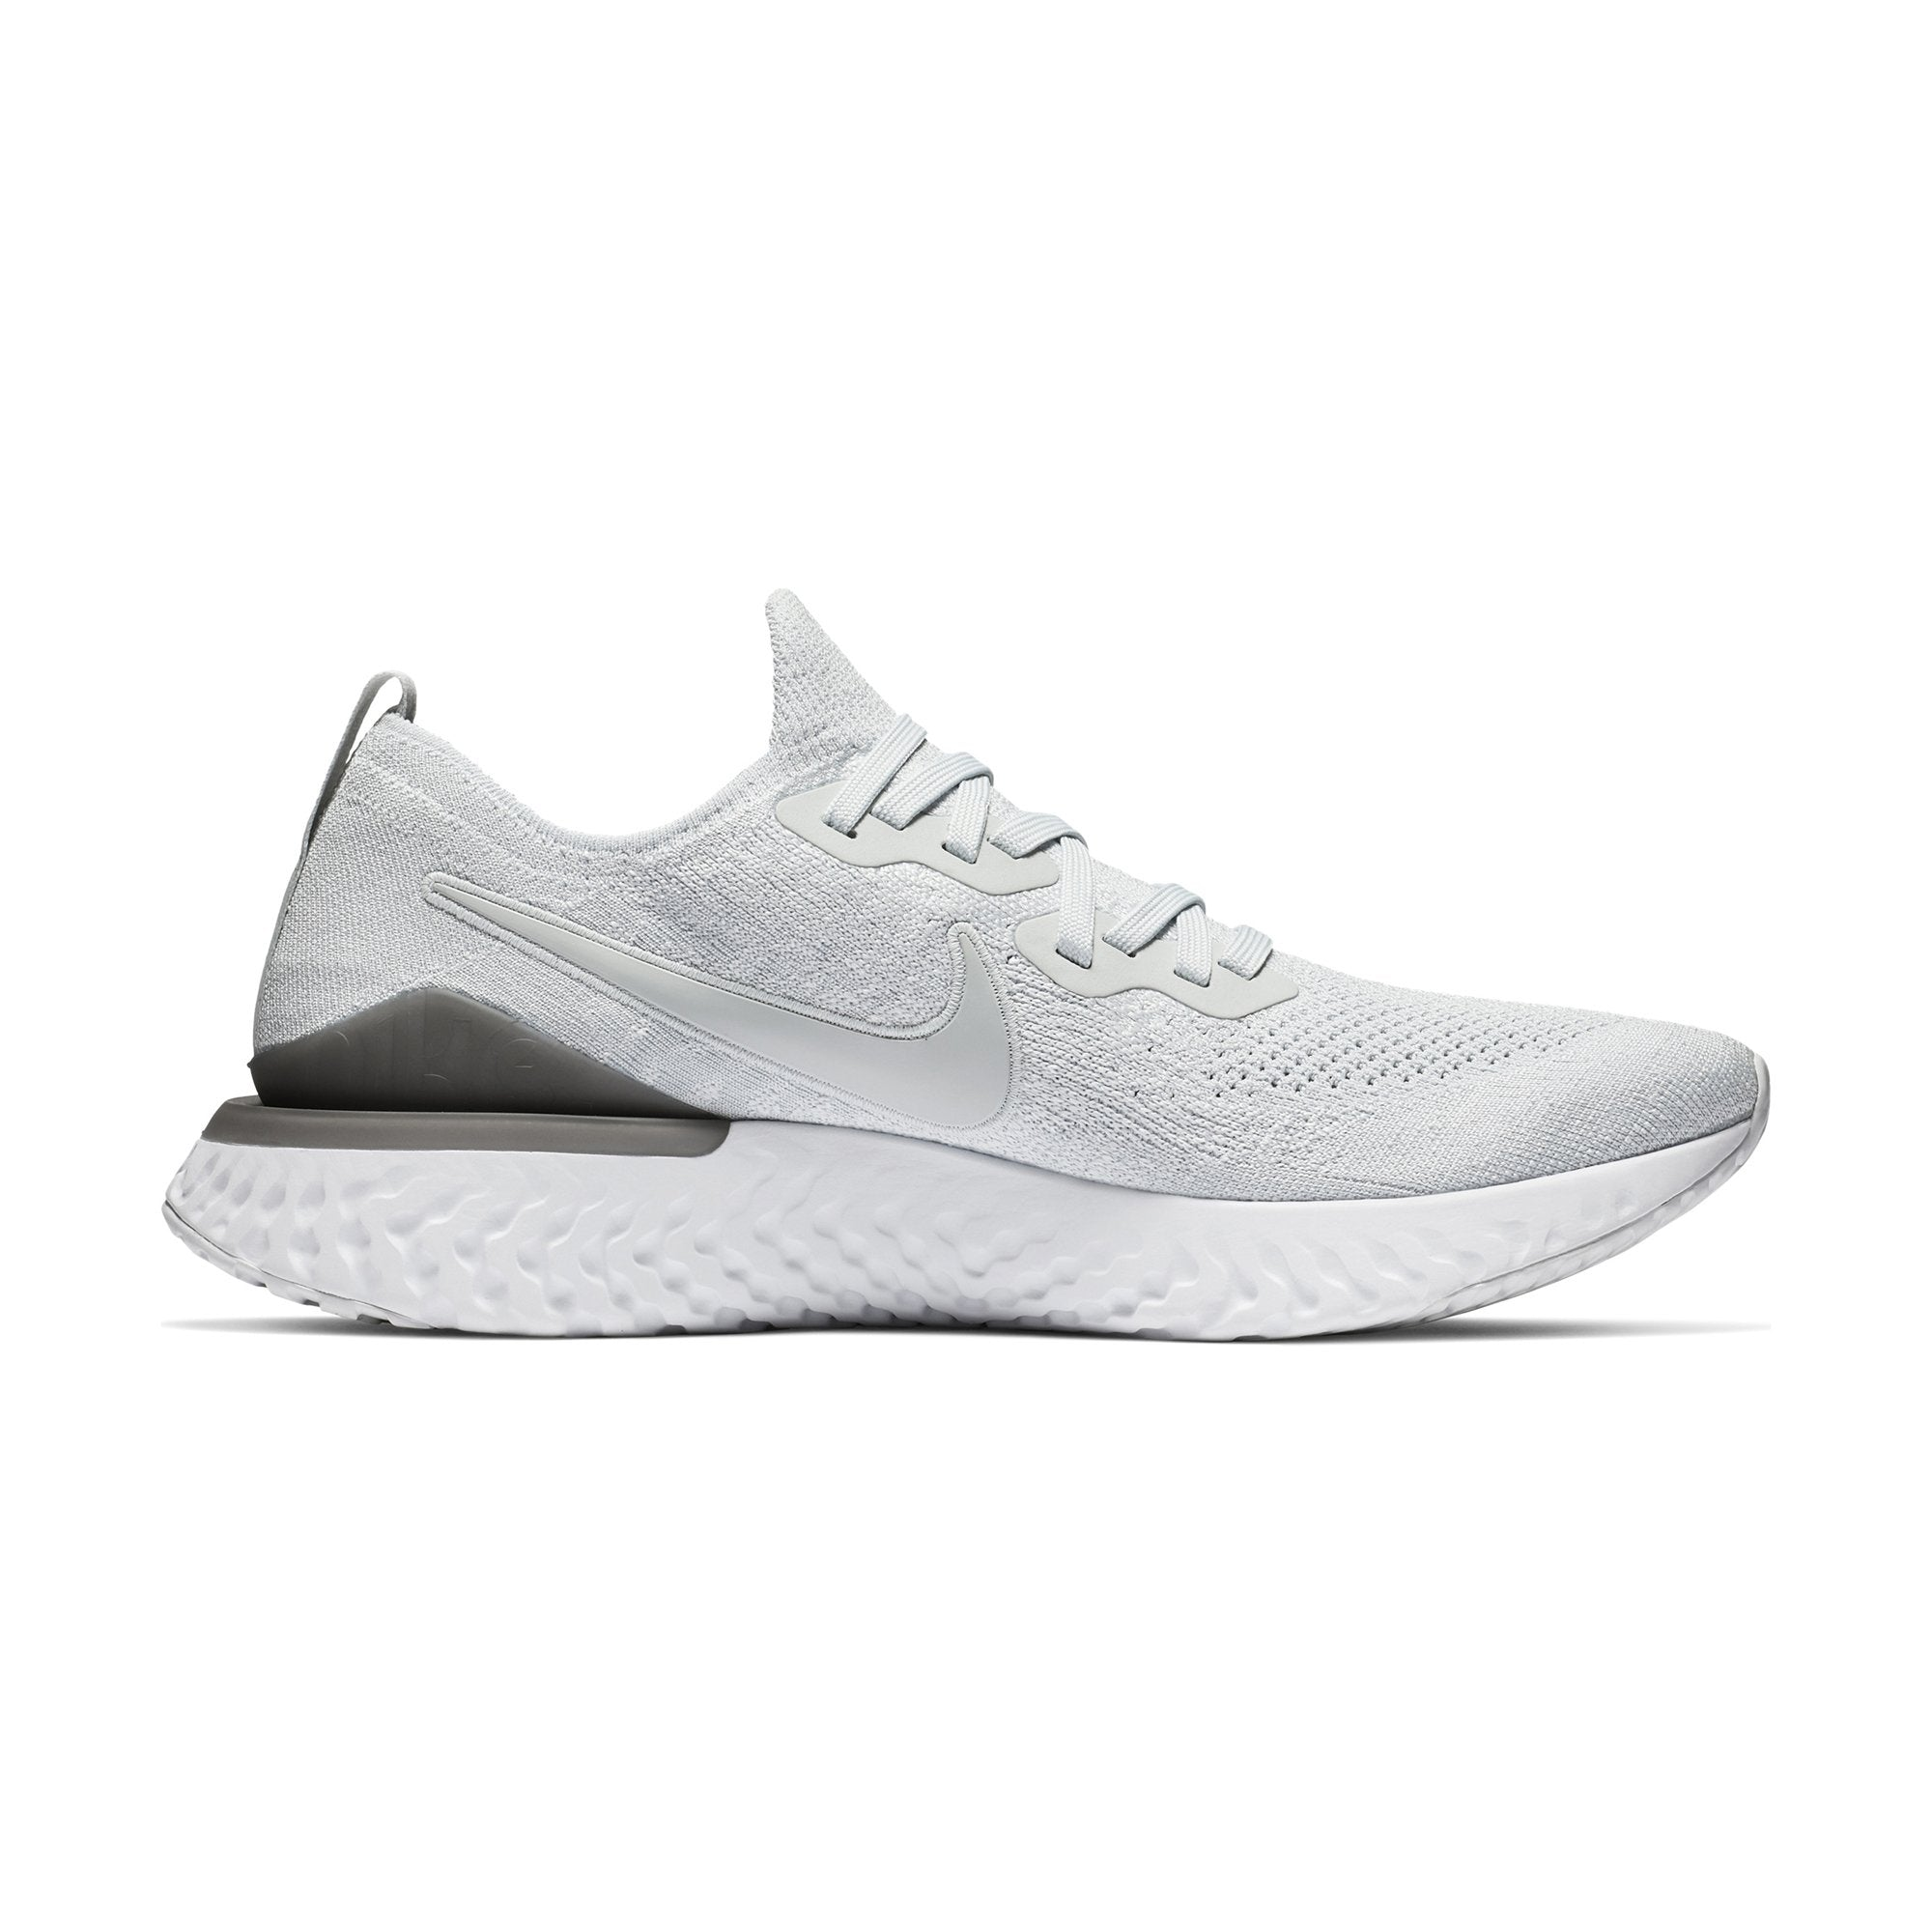 cfa81b3d8bb2 Buy Nike Men Epic React Flyknit 2 Running Shoes